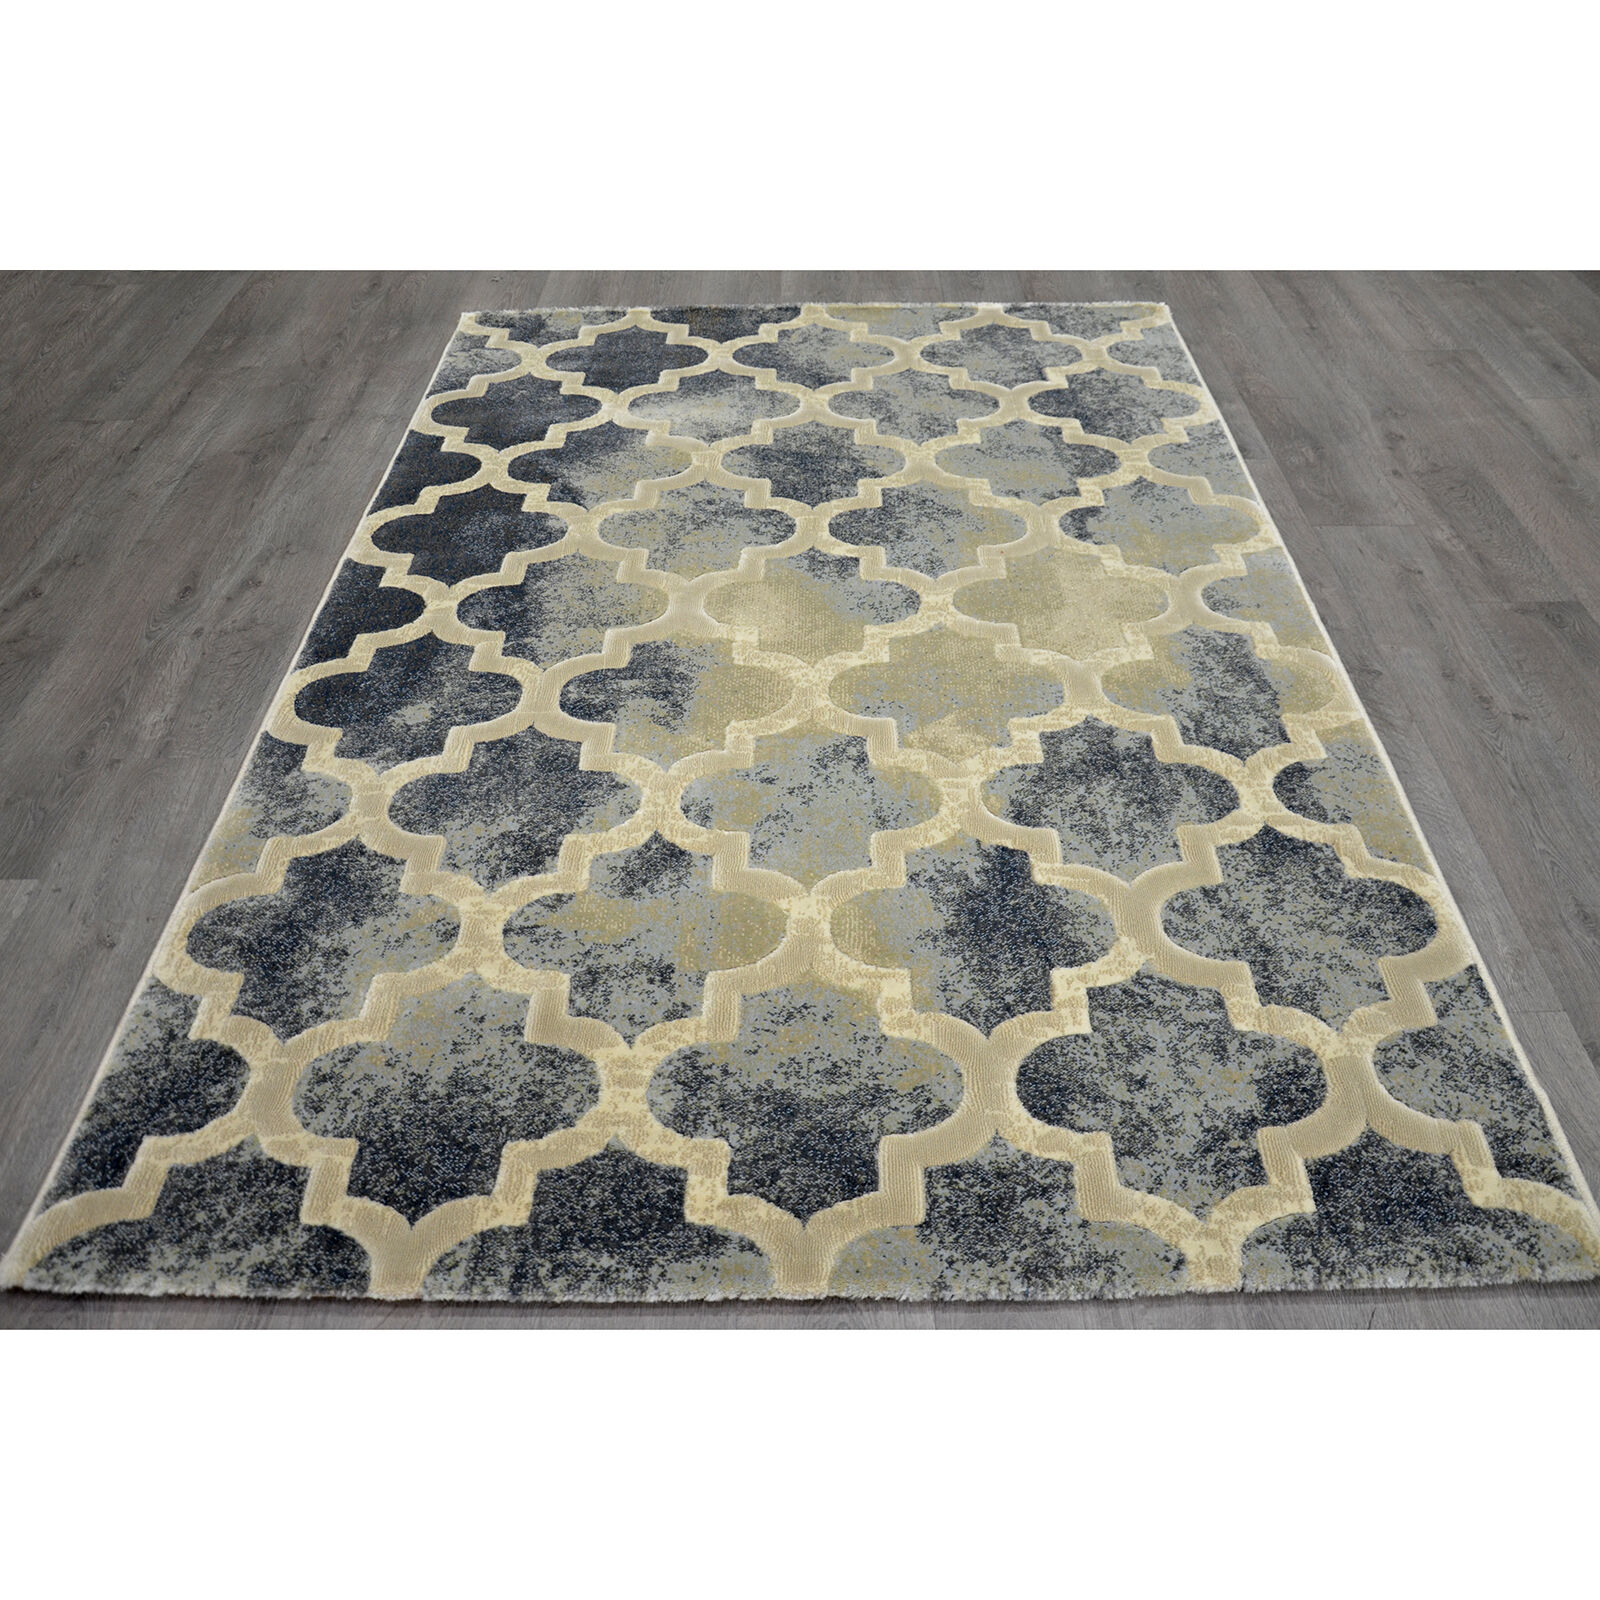 Rugs For Every Style And Budget At Home Stores